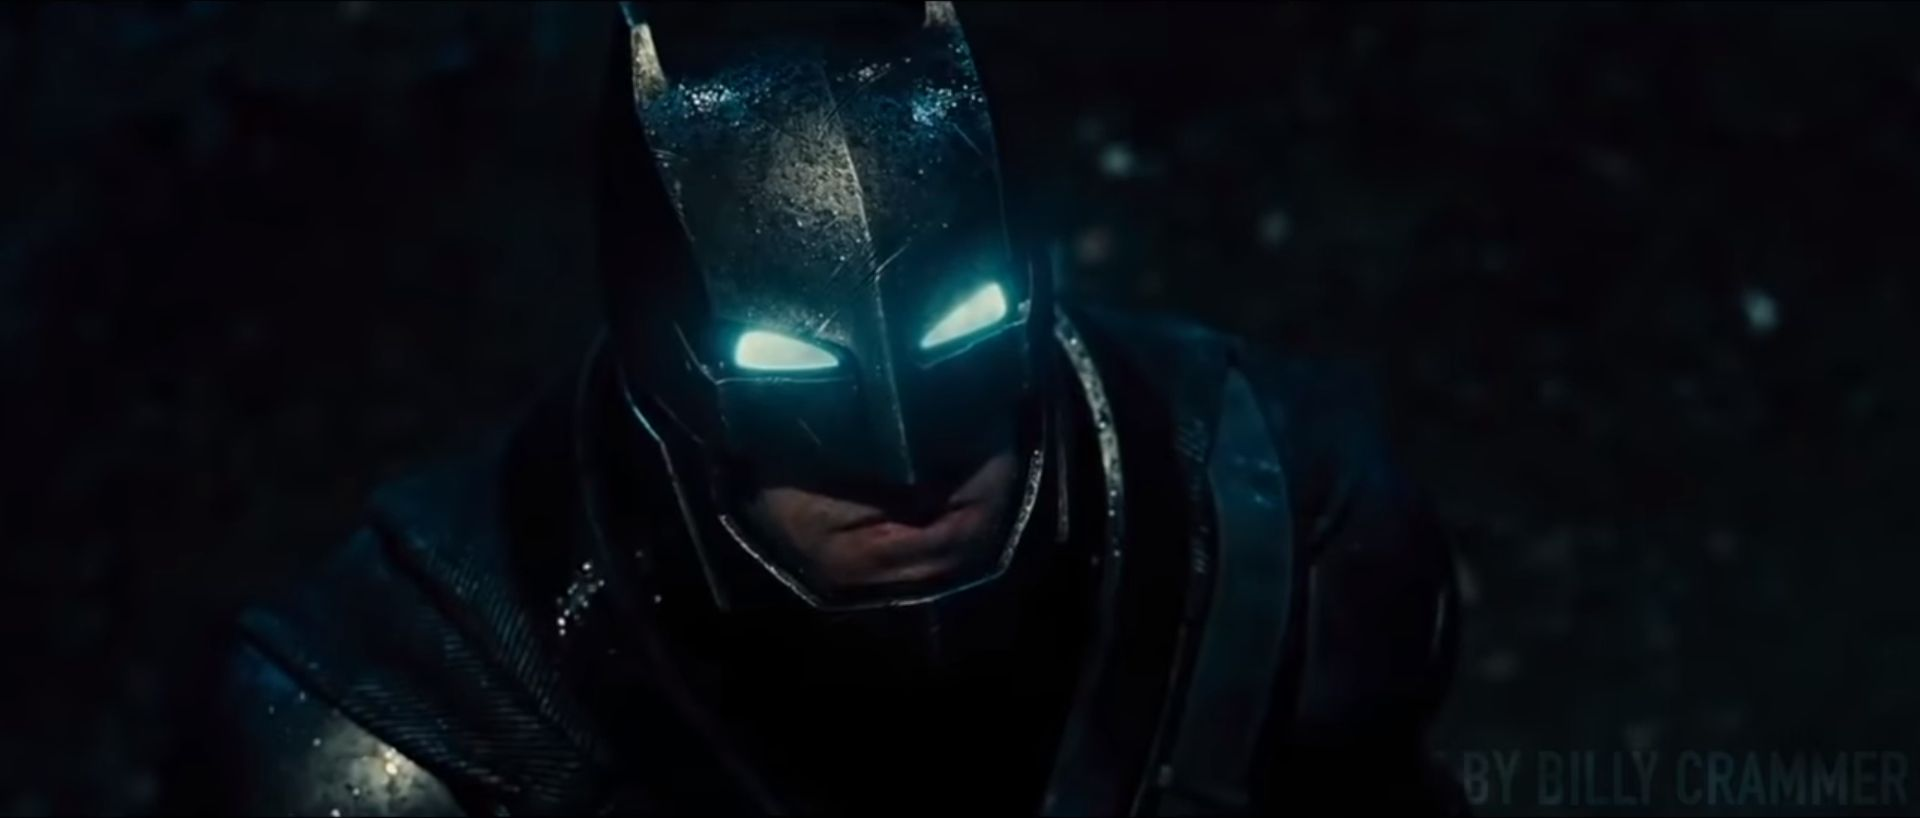 Watch Iron Man Battle Batman in This Fan Edited Film